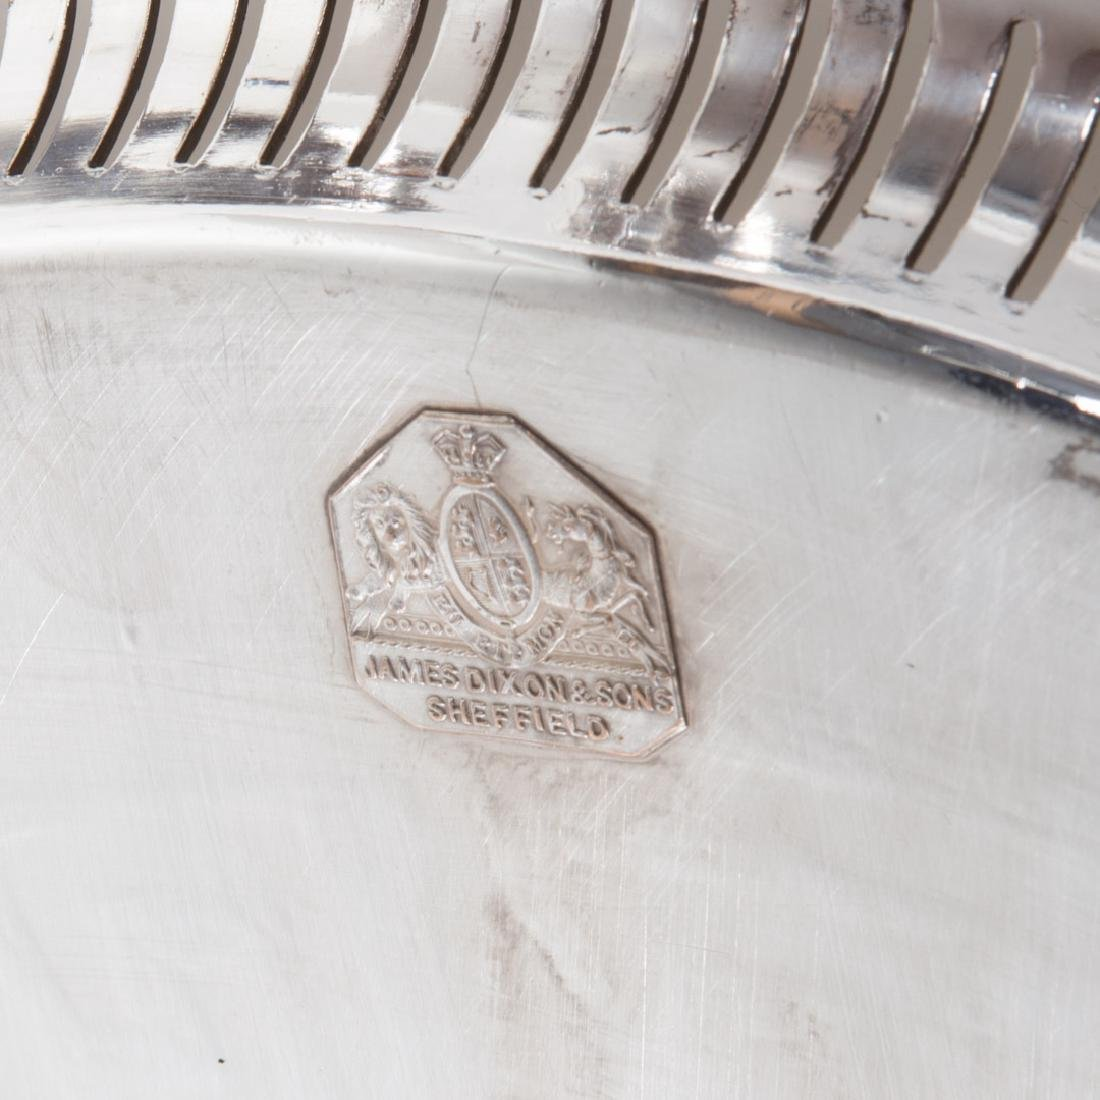 Sheffield plated butler's tray James Dixon & Sons - 8